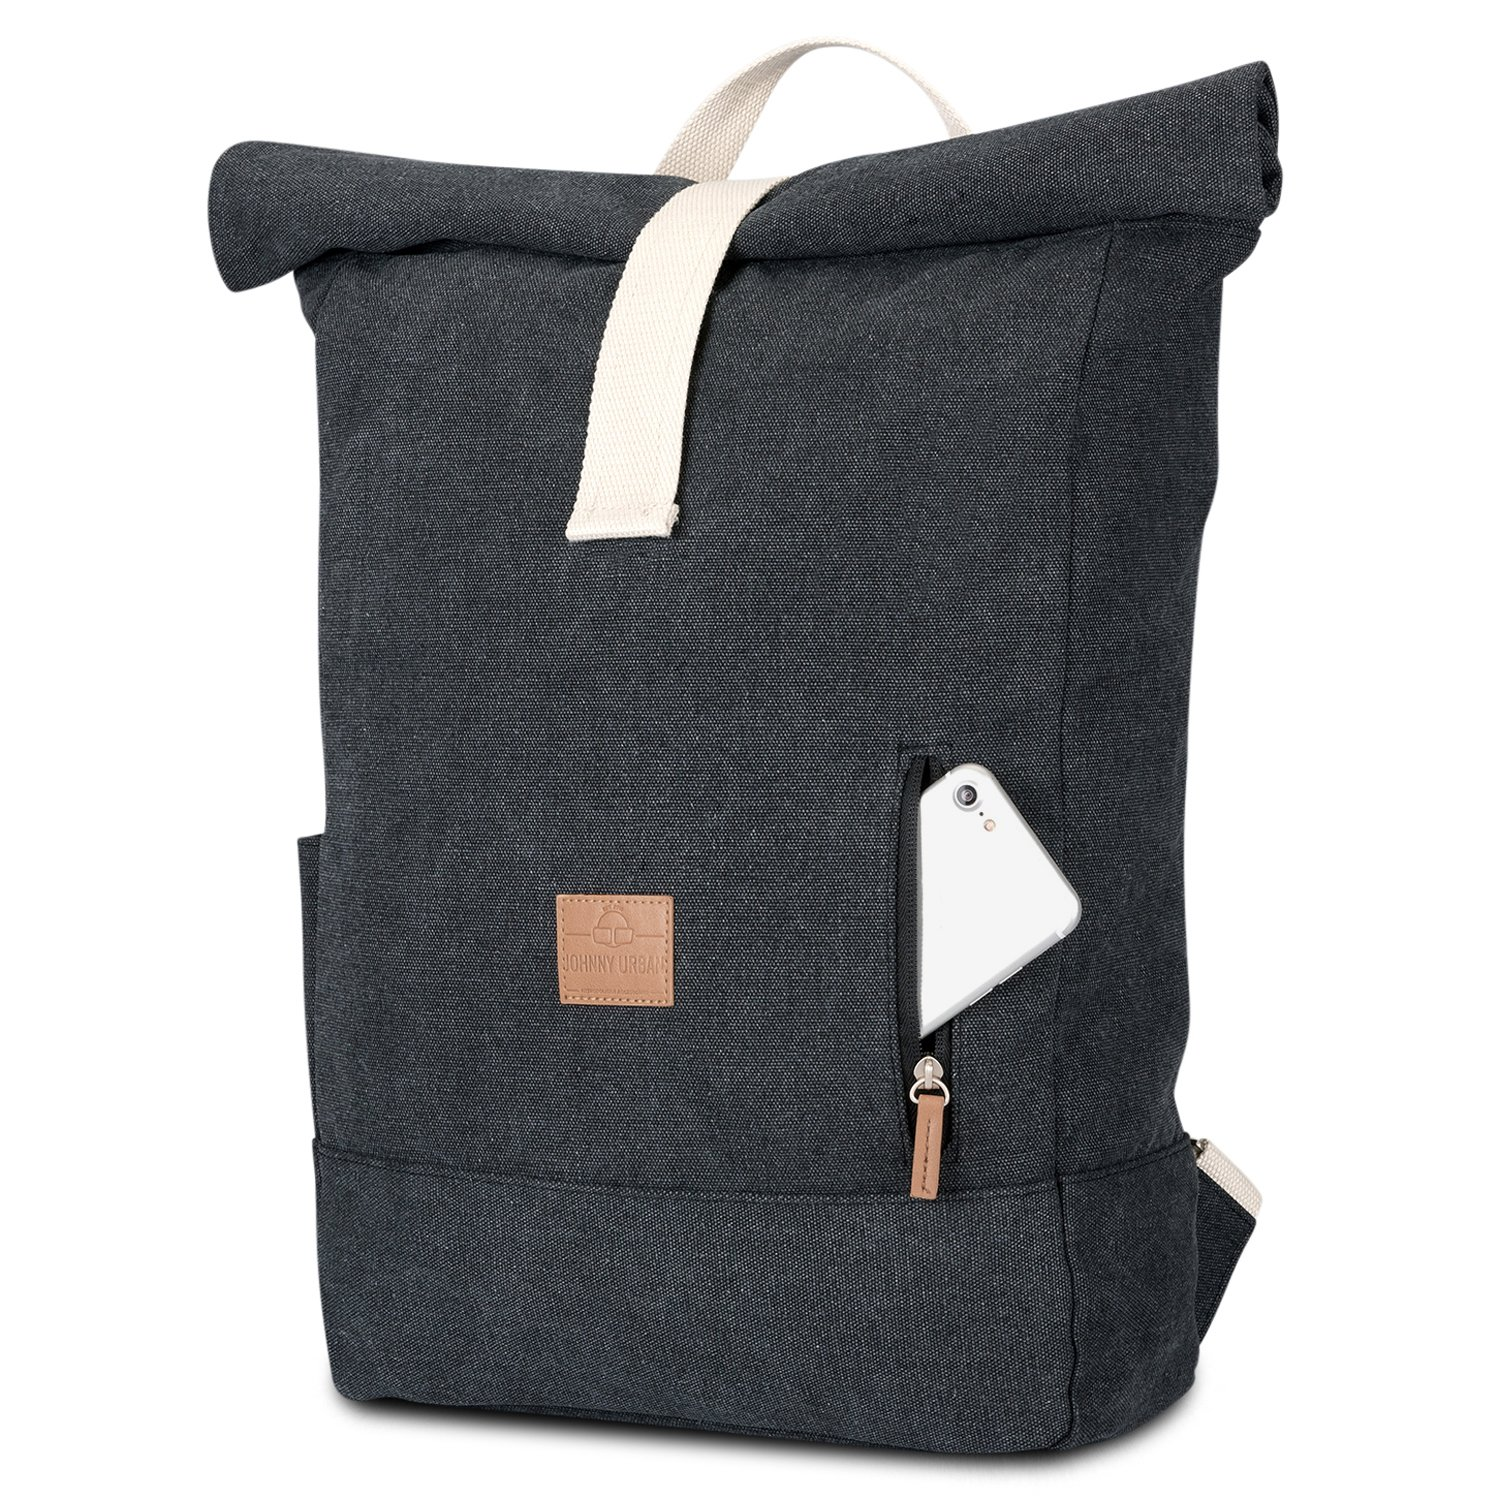 b8718aafffba Johnny Urban Roll Top Backpack from Cotton Canvas - Black - Durable Daypack  for Men   Women - Vintage 18 - 22 Litre Rucksack day-to-day Bag ...